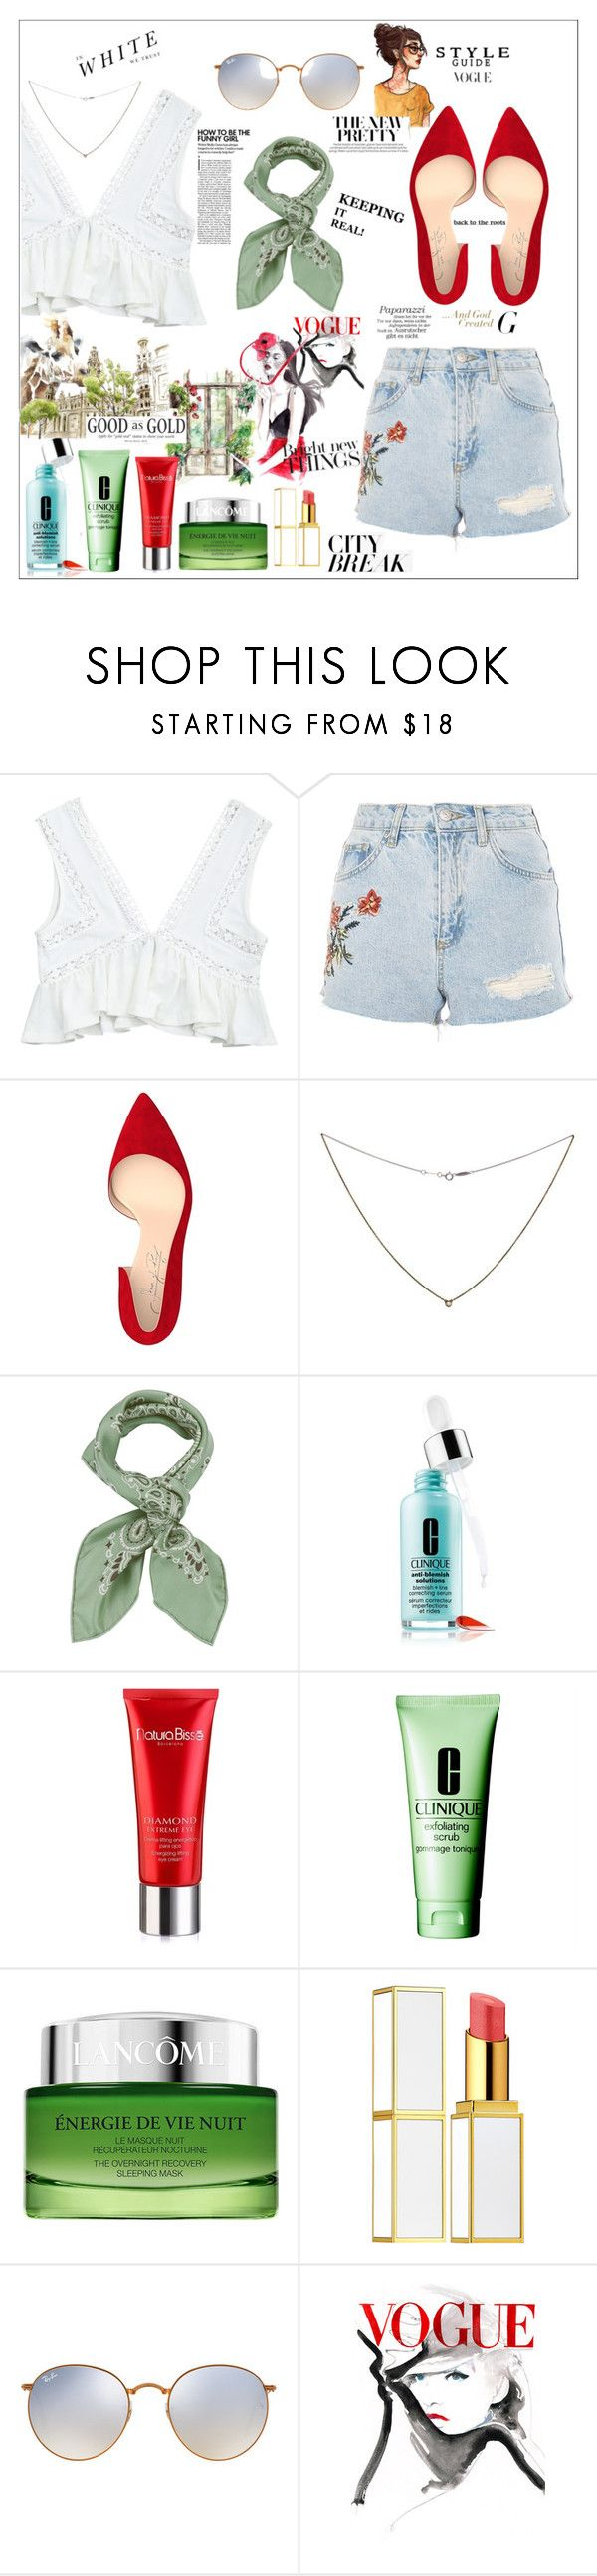 """Summer Fling"" by eleanorbr ❤ liked on Polyvore featuring Topshop, Shoes of Prey, Tiffany & Co., Manipuri, Clinique, Natura Bissé, Lancôme, Tom Ford, Ray-Ban and Leftbank Art"